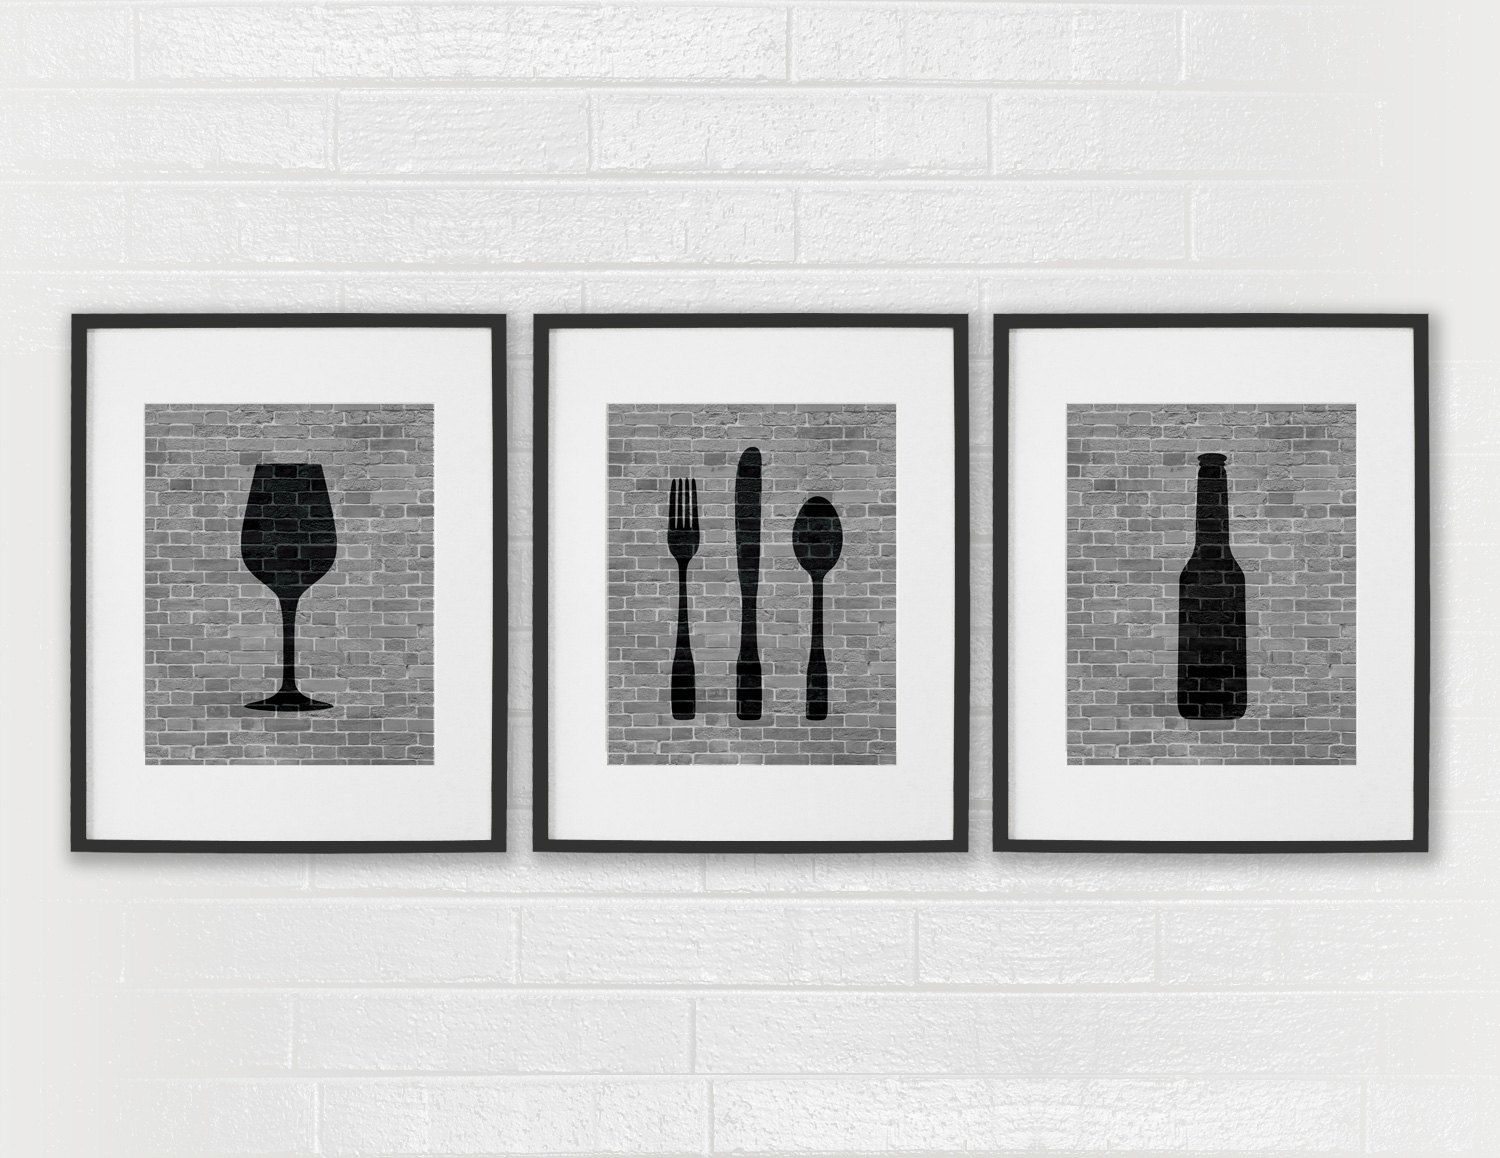 Captivating Modern Dining Room Art Prints   Black U0026 White Kitchen   Beer Wine Fork  Knife Spoon   Set Of 3 Dining Room Art   Kitchen Wall Decor